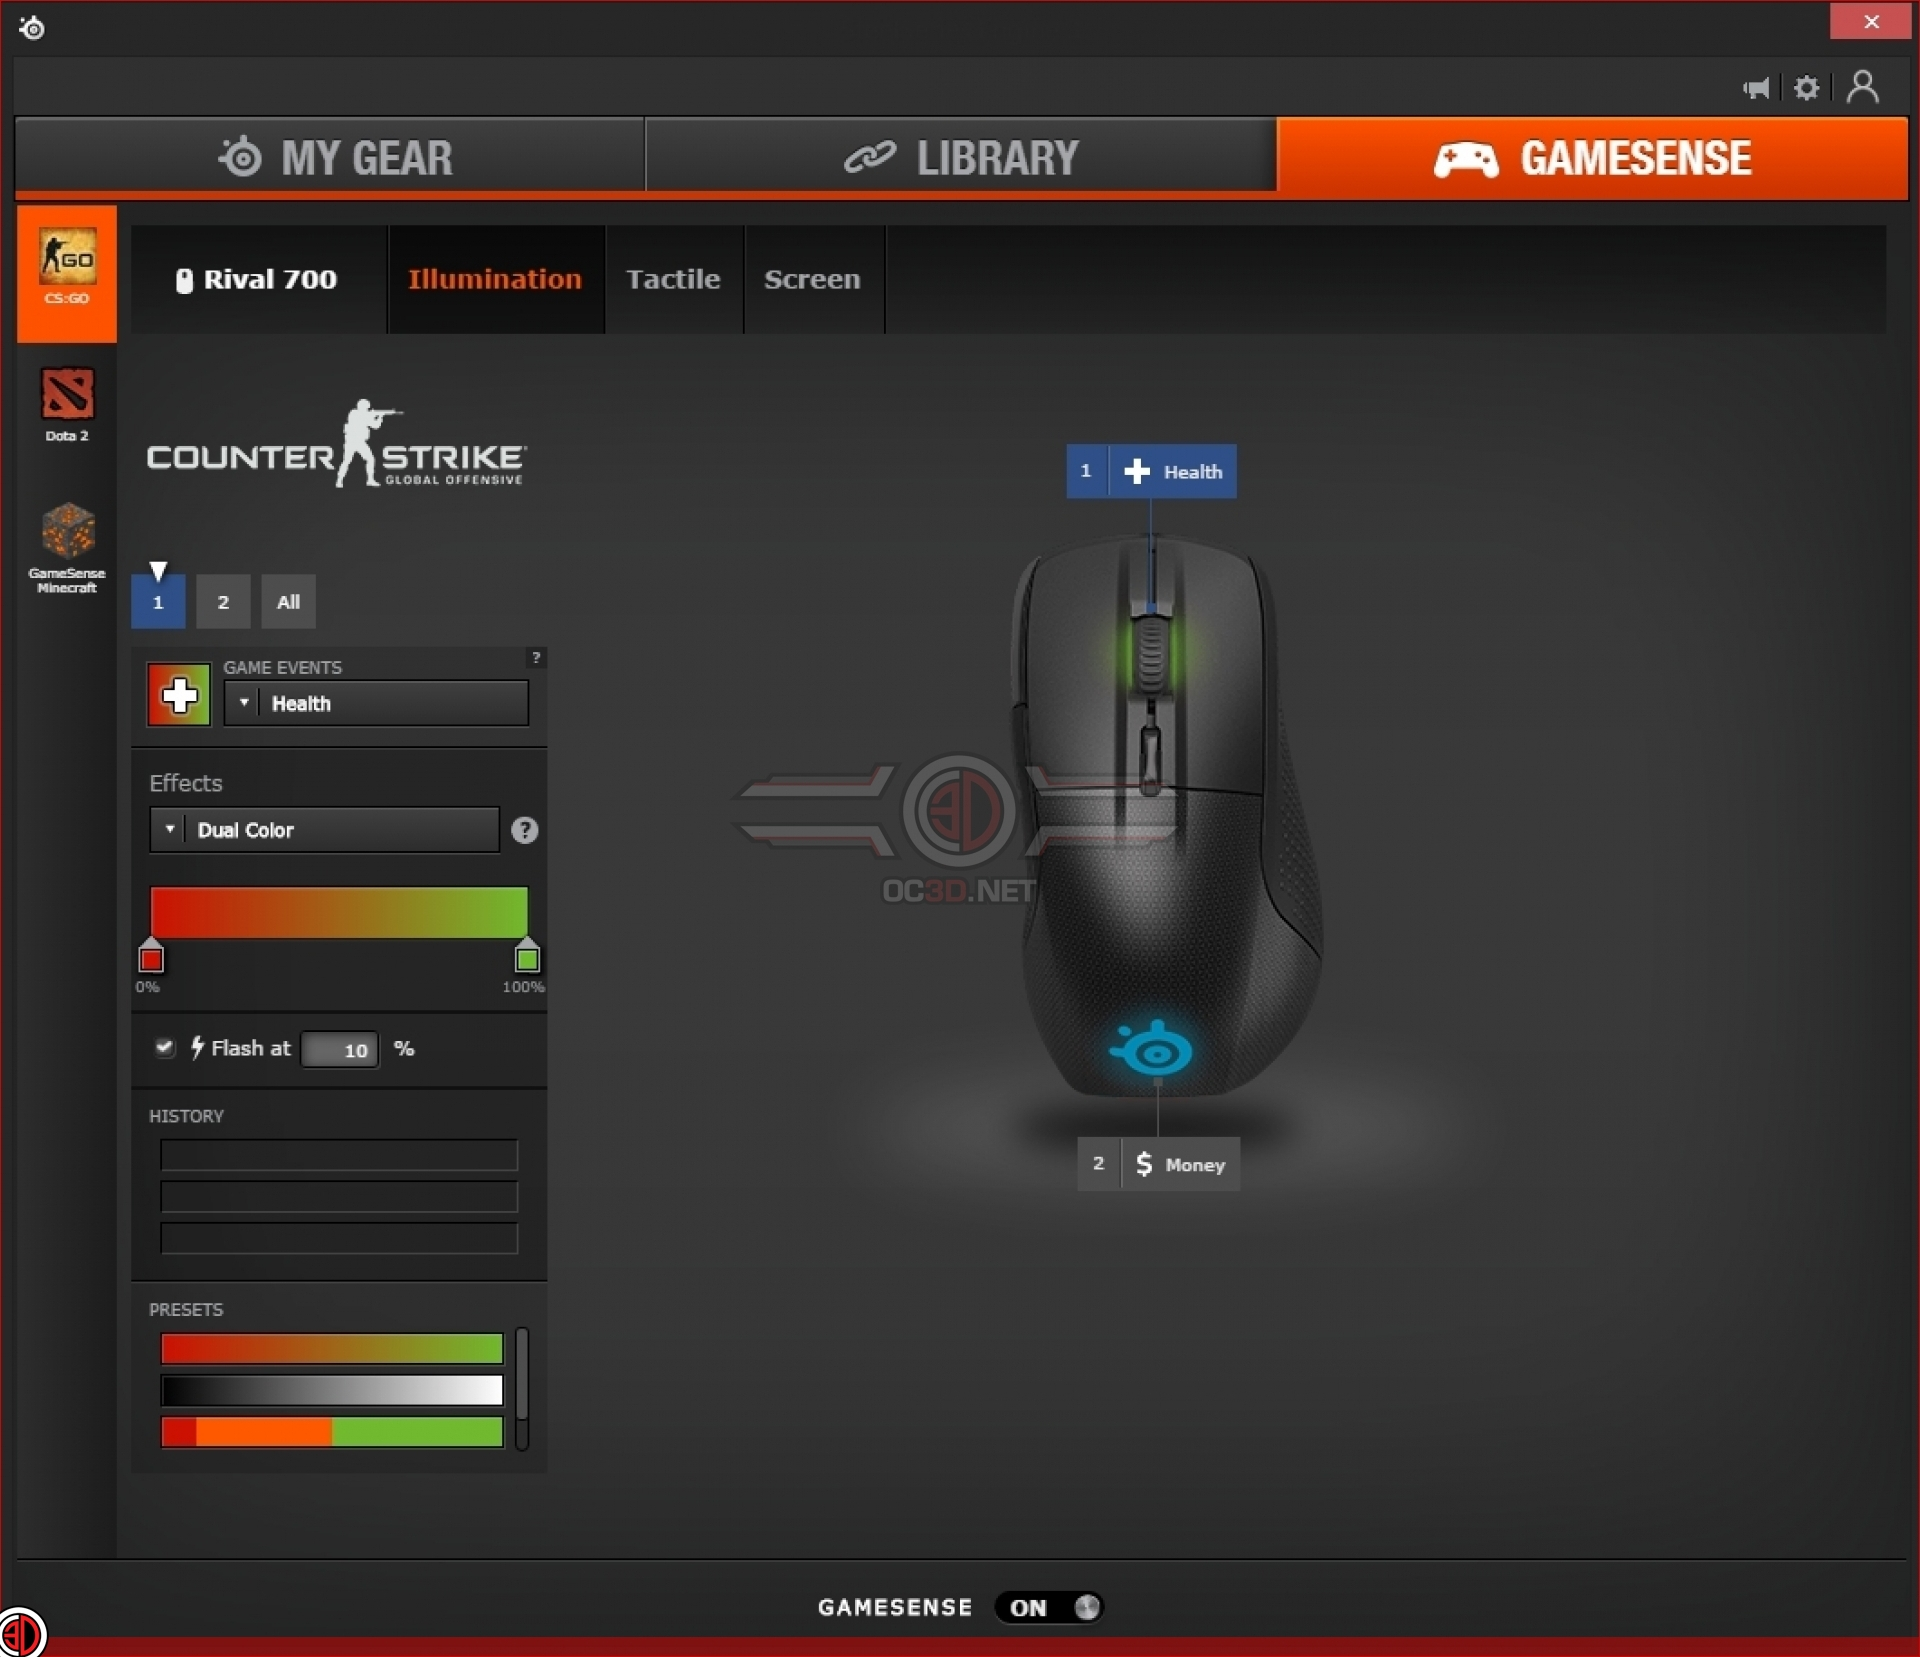 Steelseries Rival 700 Gaming Mouse Review | Software | Input